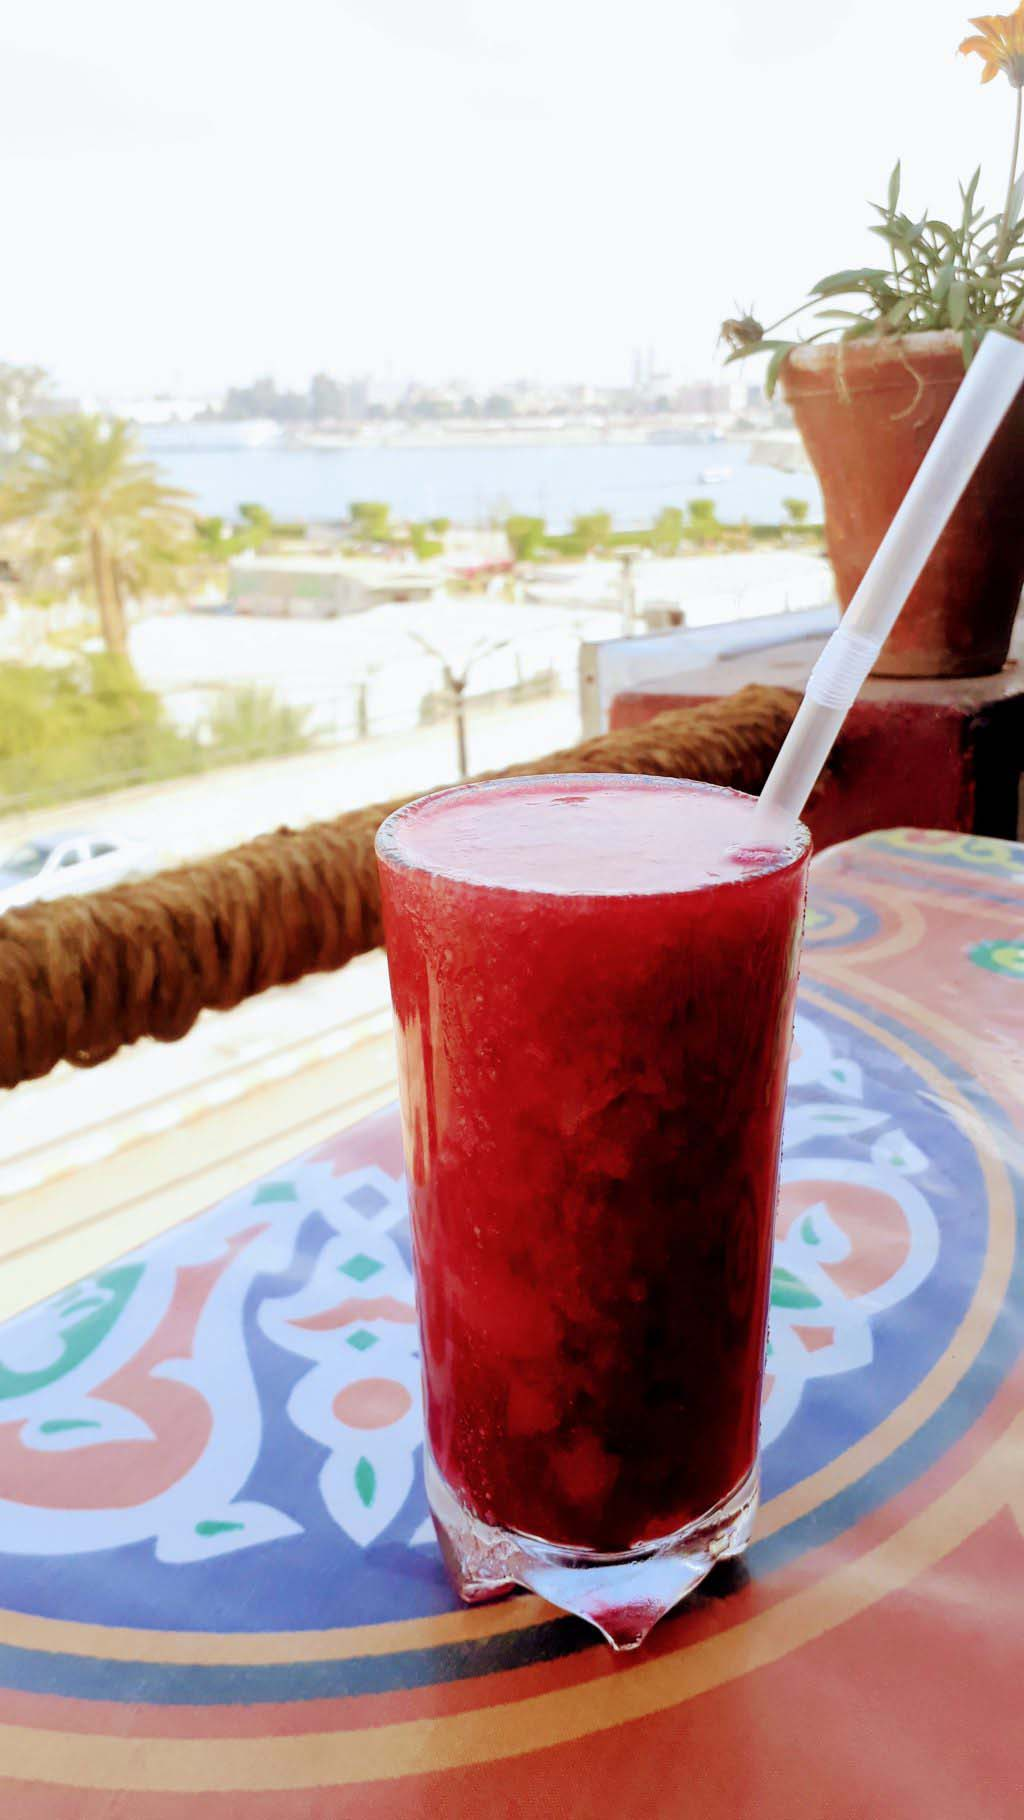 Freshly squeezed juice with Nile in the background